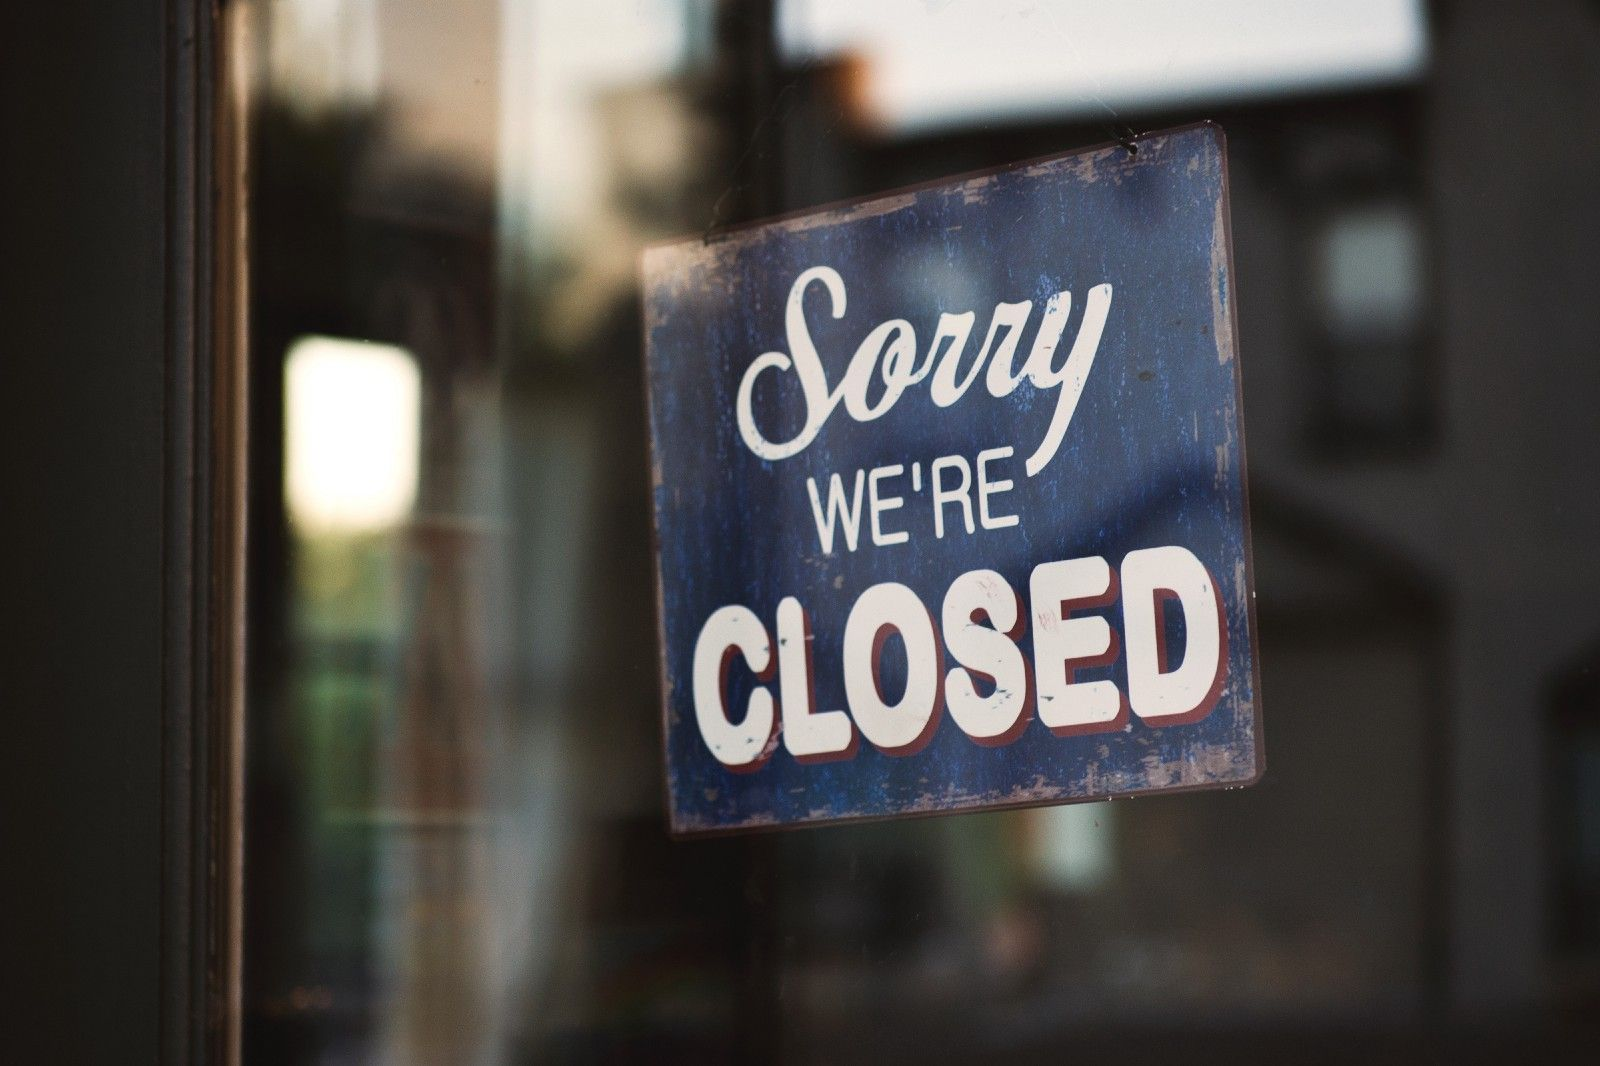 """close up of a sign that says """"Sorry we're closed"""" hanging in a window"""